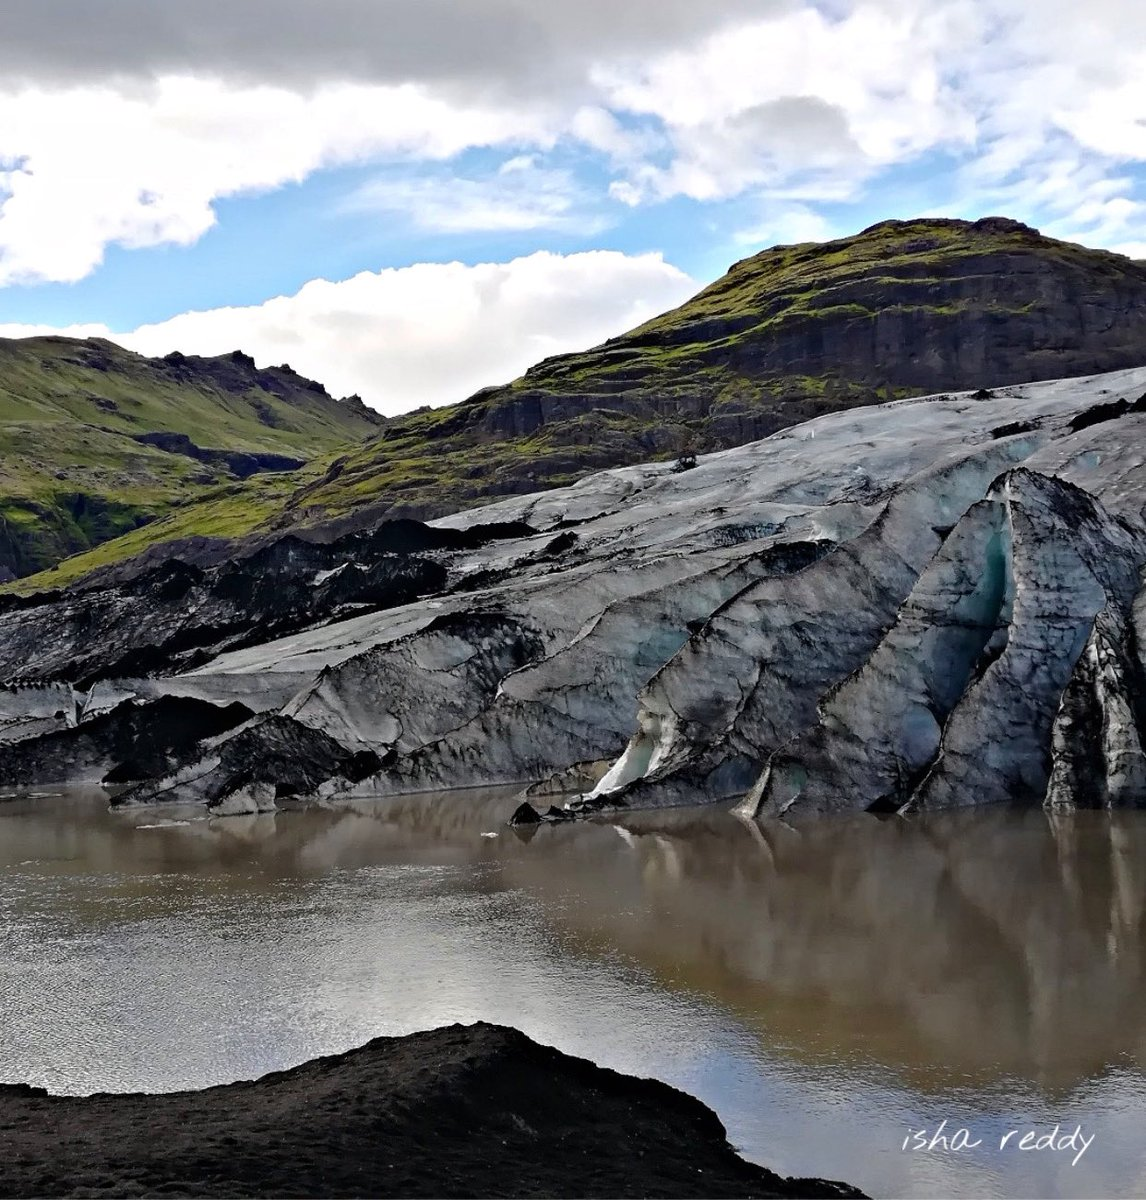 Iceland's breathtaking Sólheimajökull glacier. Did you know that this ash covered glacier sits on top of a volcano?! To know more about this amazing nation read The Fire Within Iceland https://amzn.to/2NgViOq  #Iceland #glacier #volcano #nature #beautiful #renewable #sustainable